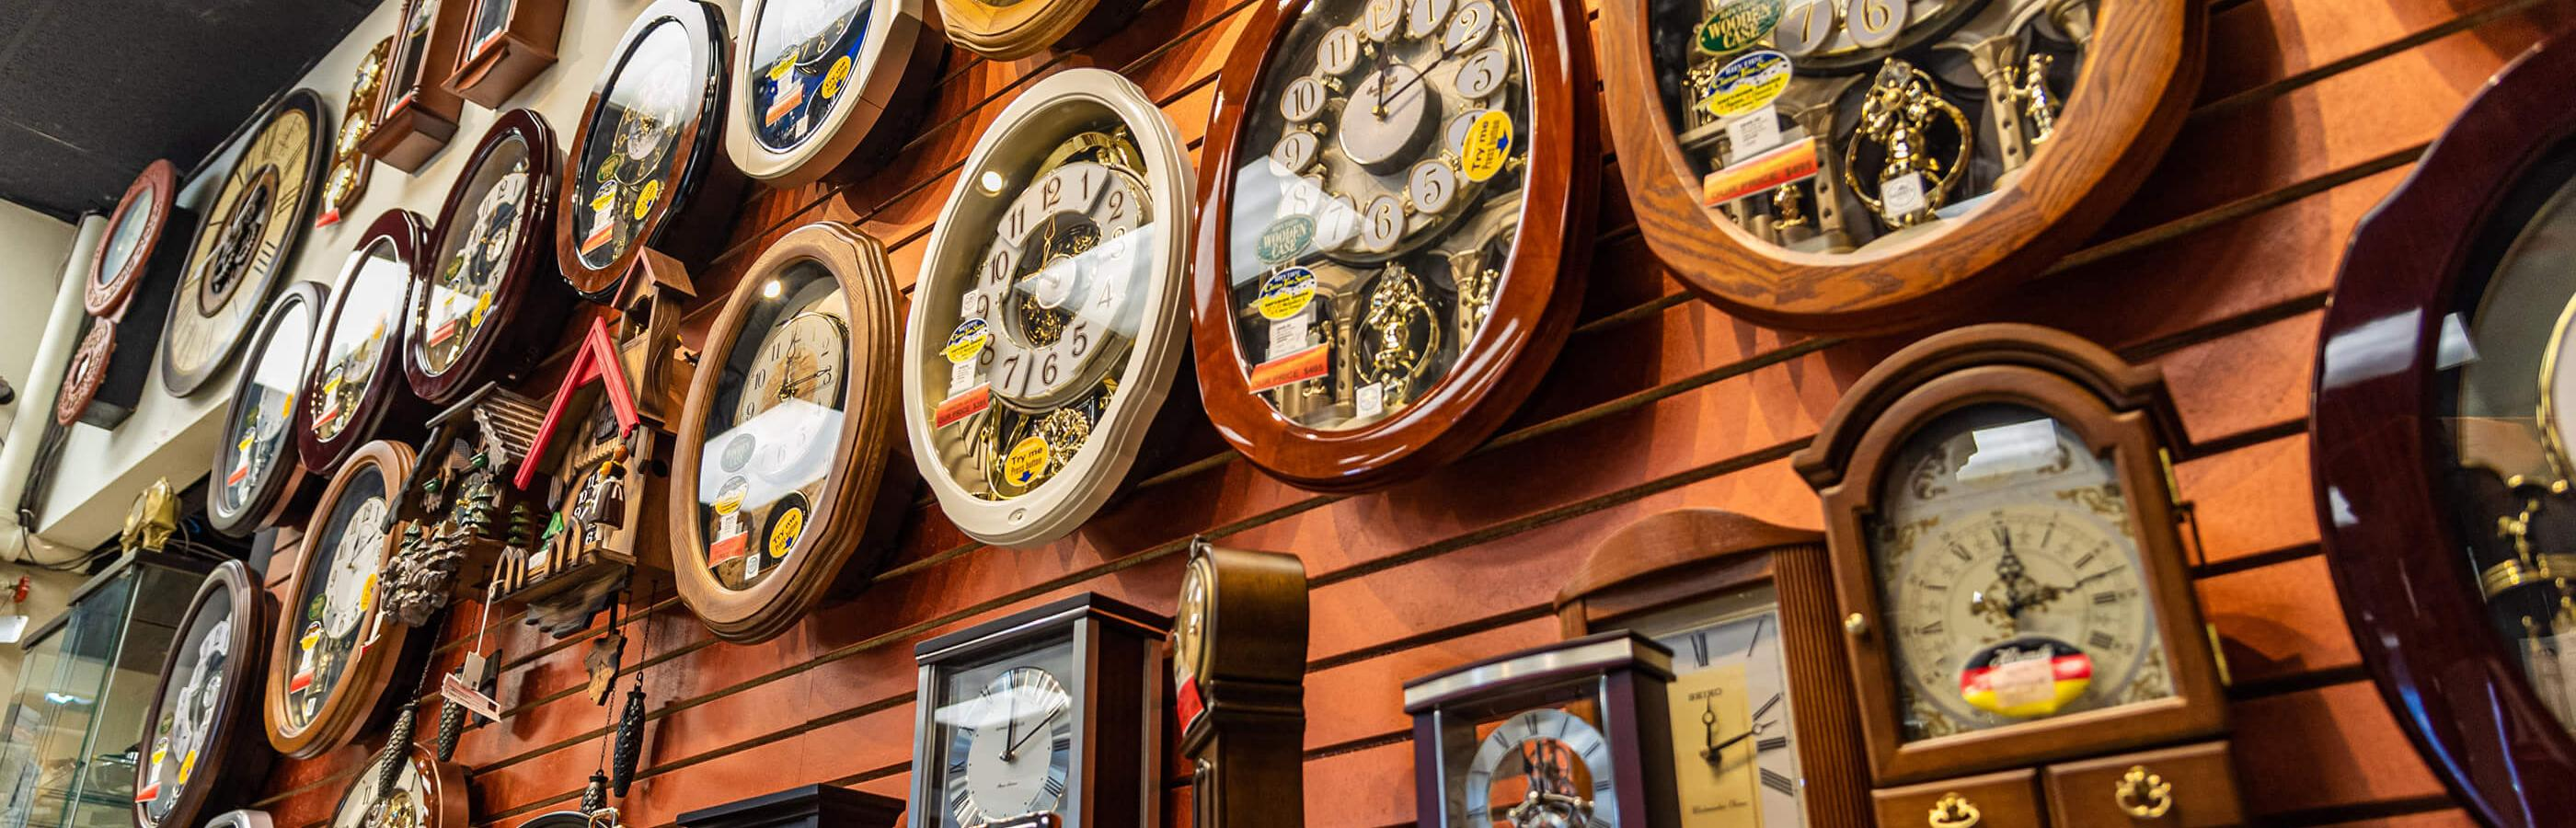 Clock Shop in Presidential Pawn Downtown Rapid City